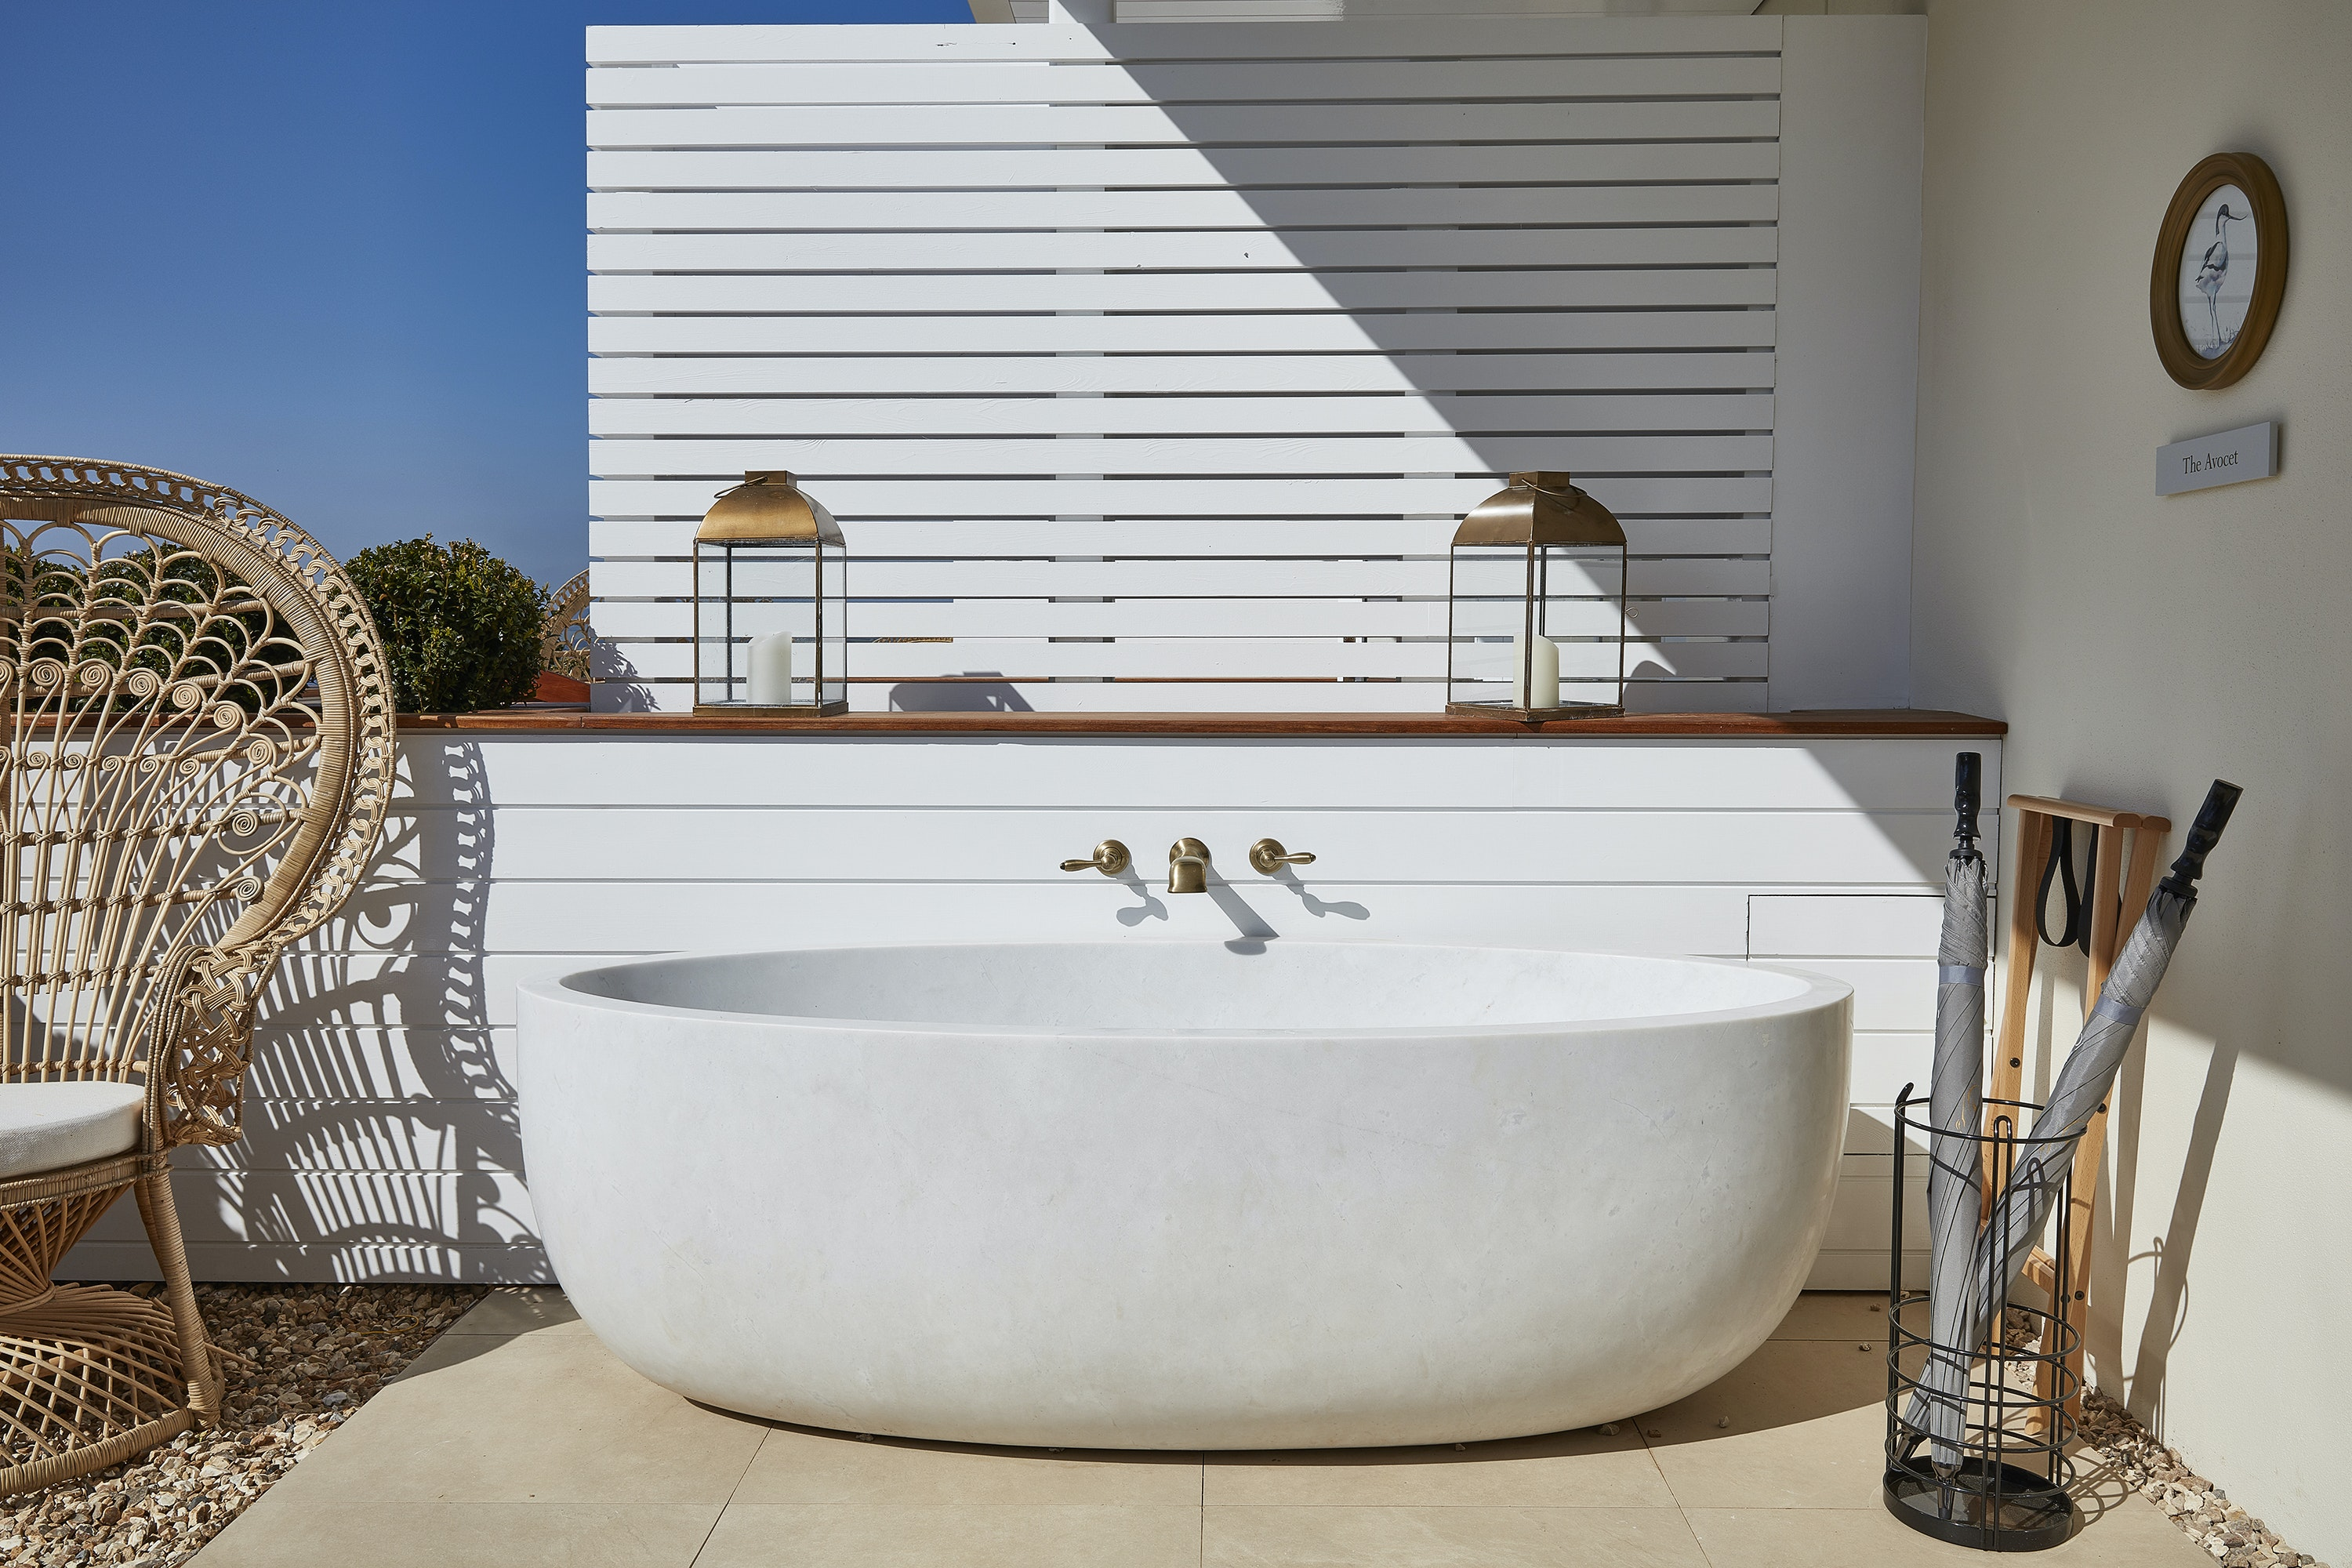 Savor the sunset from the outdoor tub in Lympstone Manor's Tern Suite.